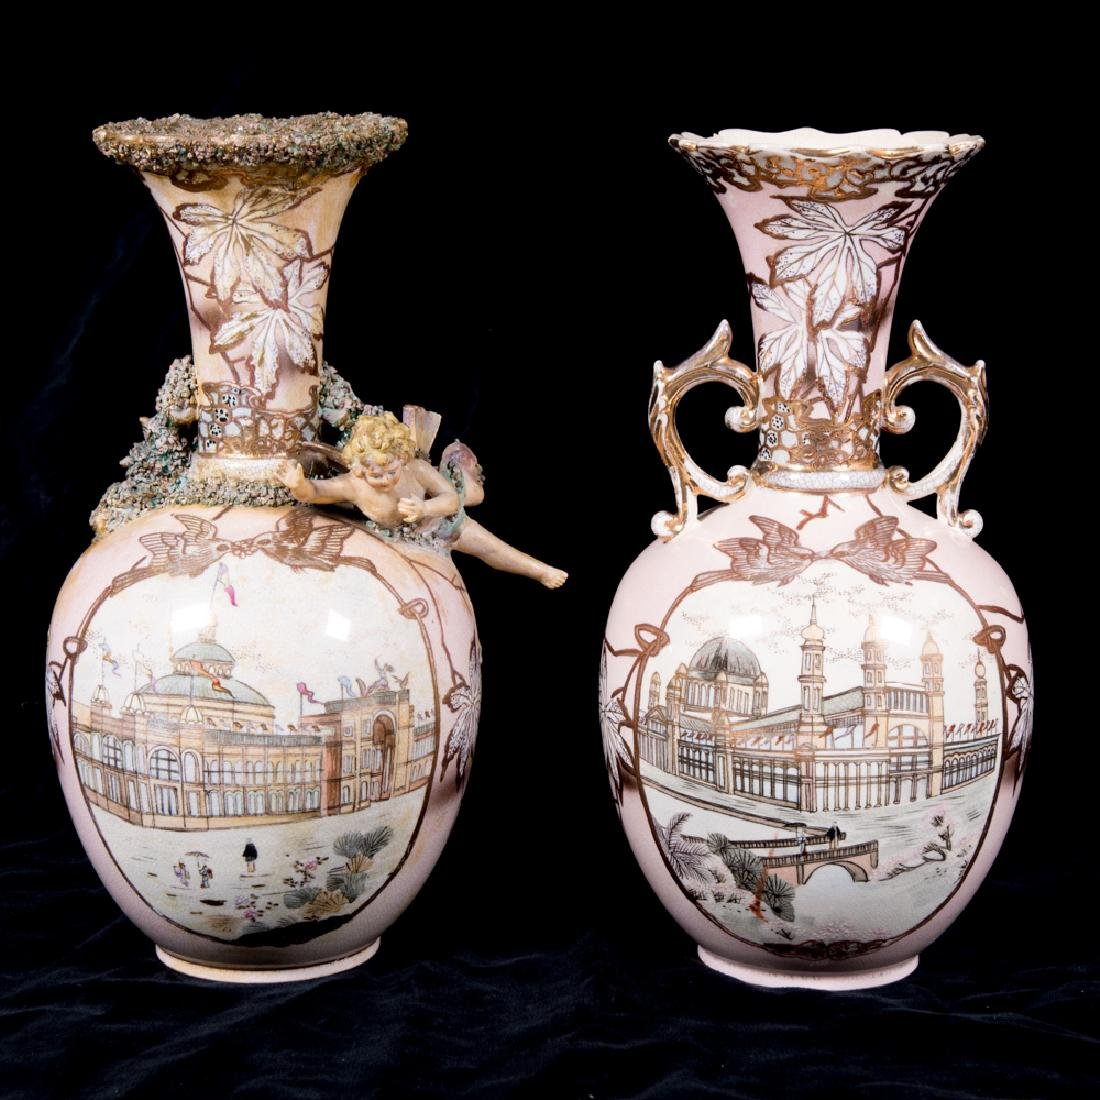 Two Porcelain Vases with Gilt Painted Decoration from